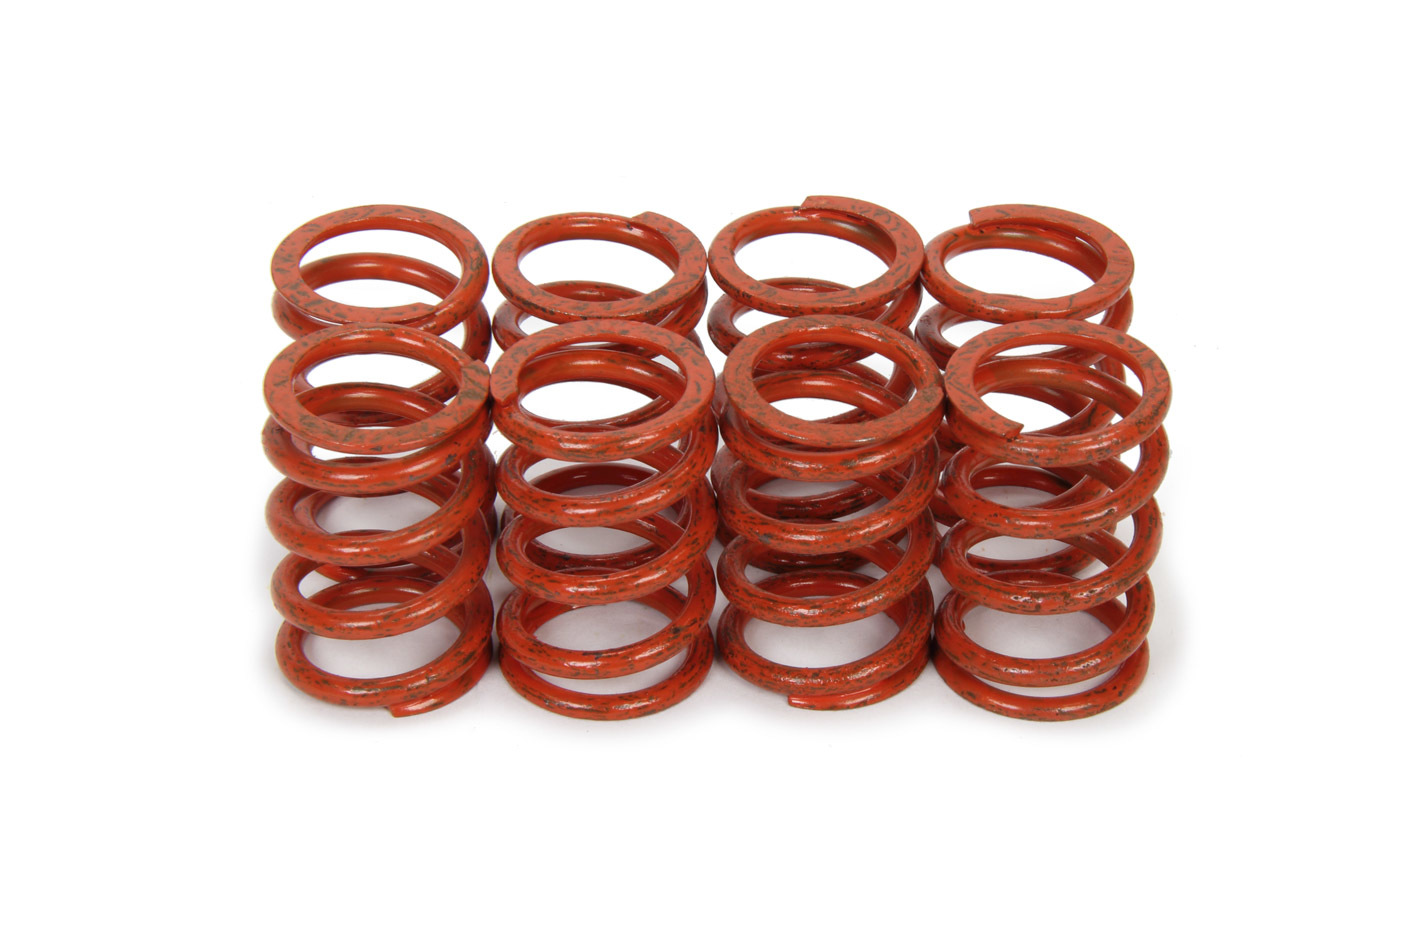 Isky Cams VWE005 Valve Spring, Outer, 320 lb/in Spring Rate, 0.720 in Coil Bind, 1.095 in OD, Set of 8